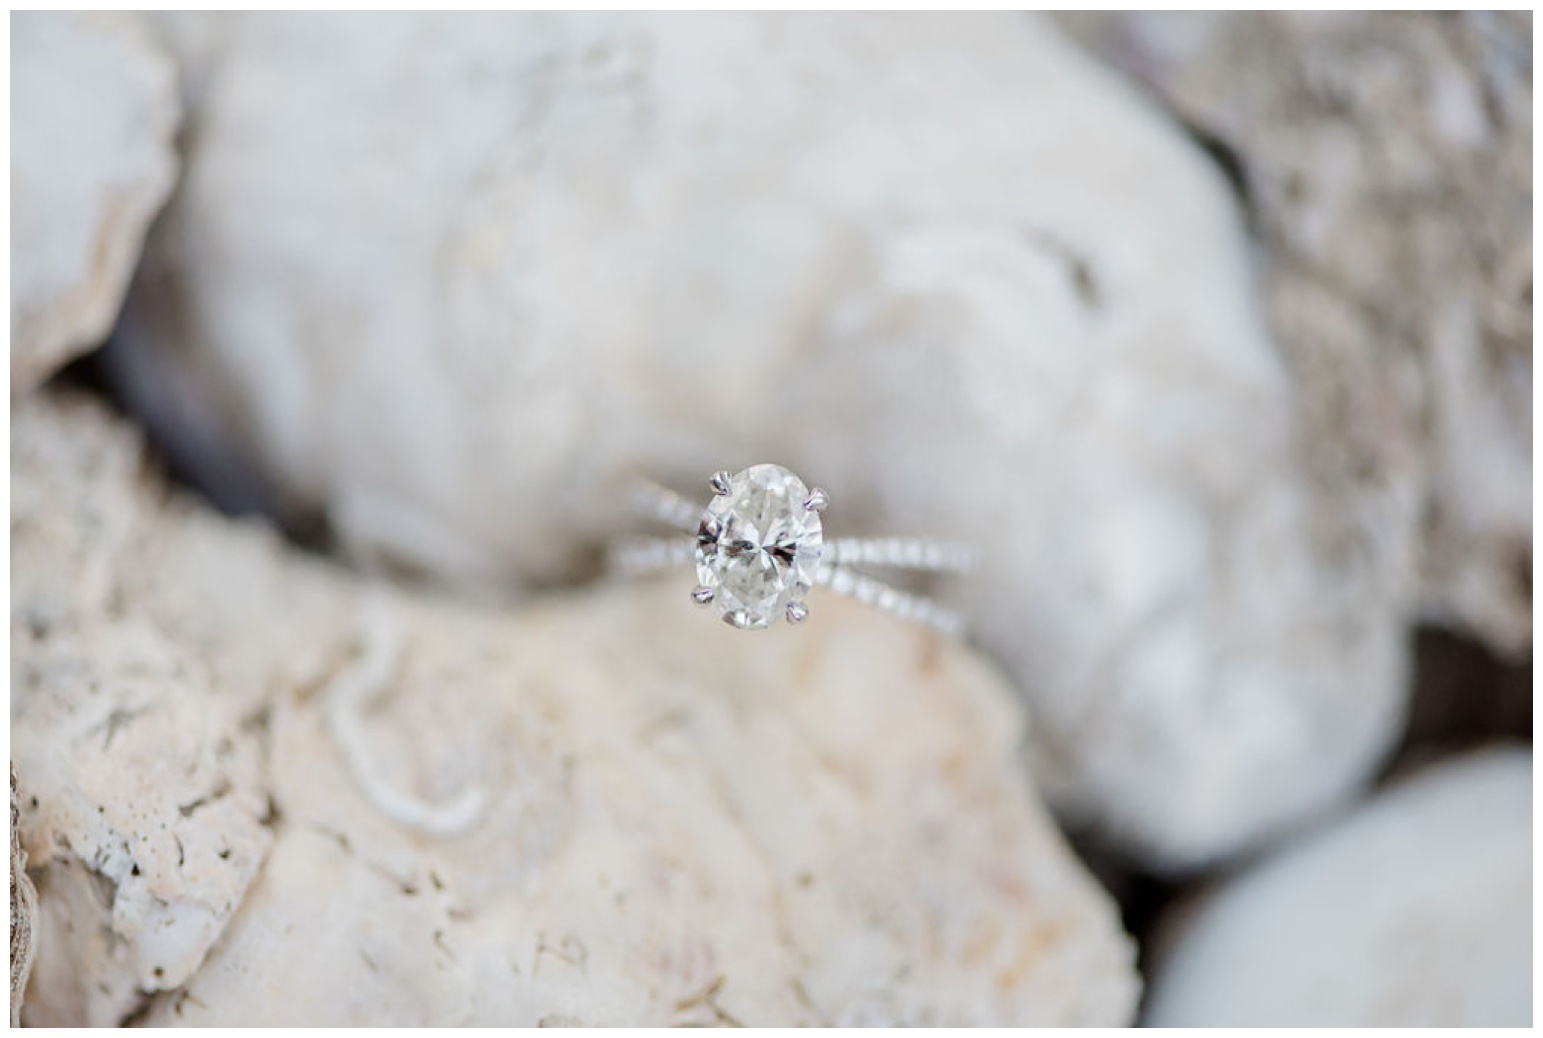 photo of diamond engagement ring and oyster shells for engagement photo session on eastern shore - bay inspired - coastal maryland - beach ideas - style